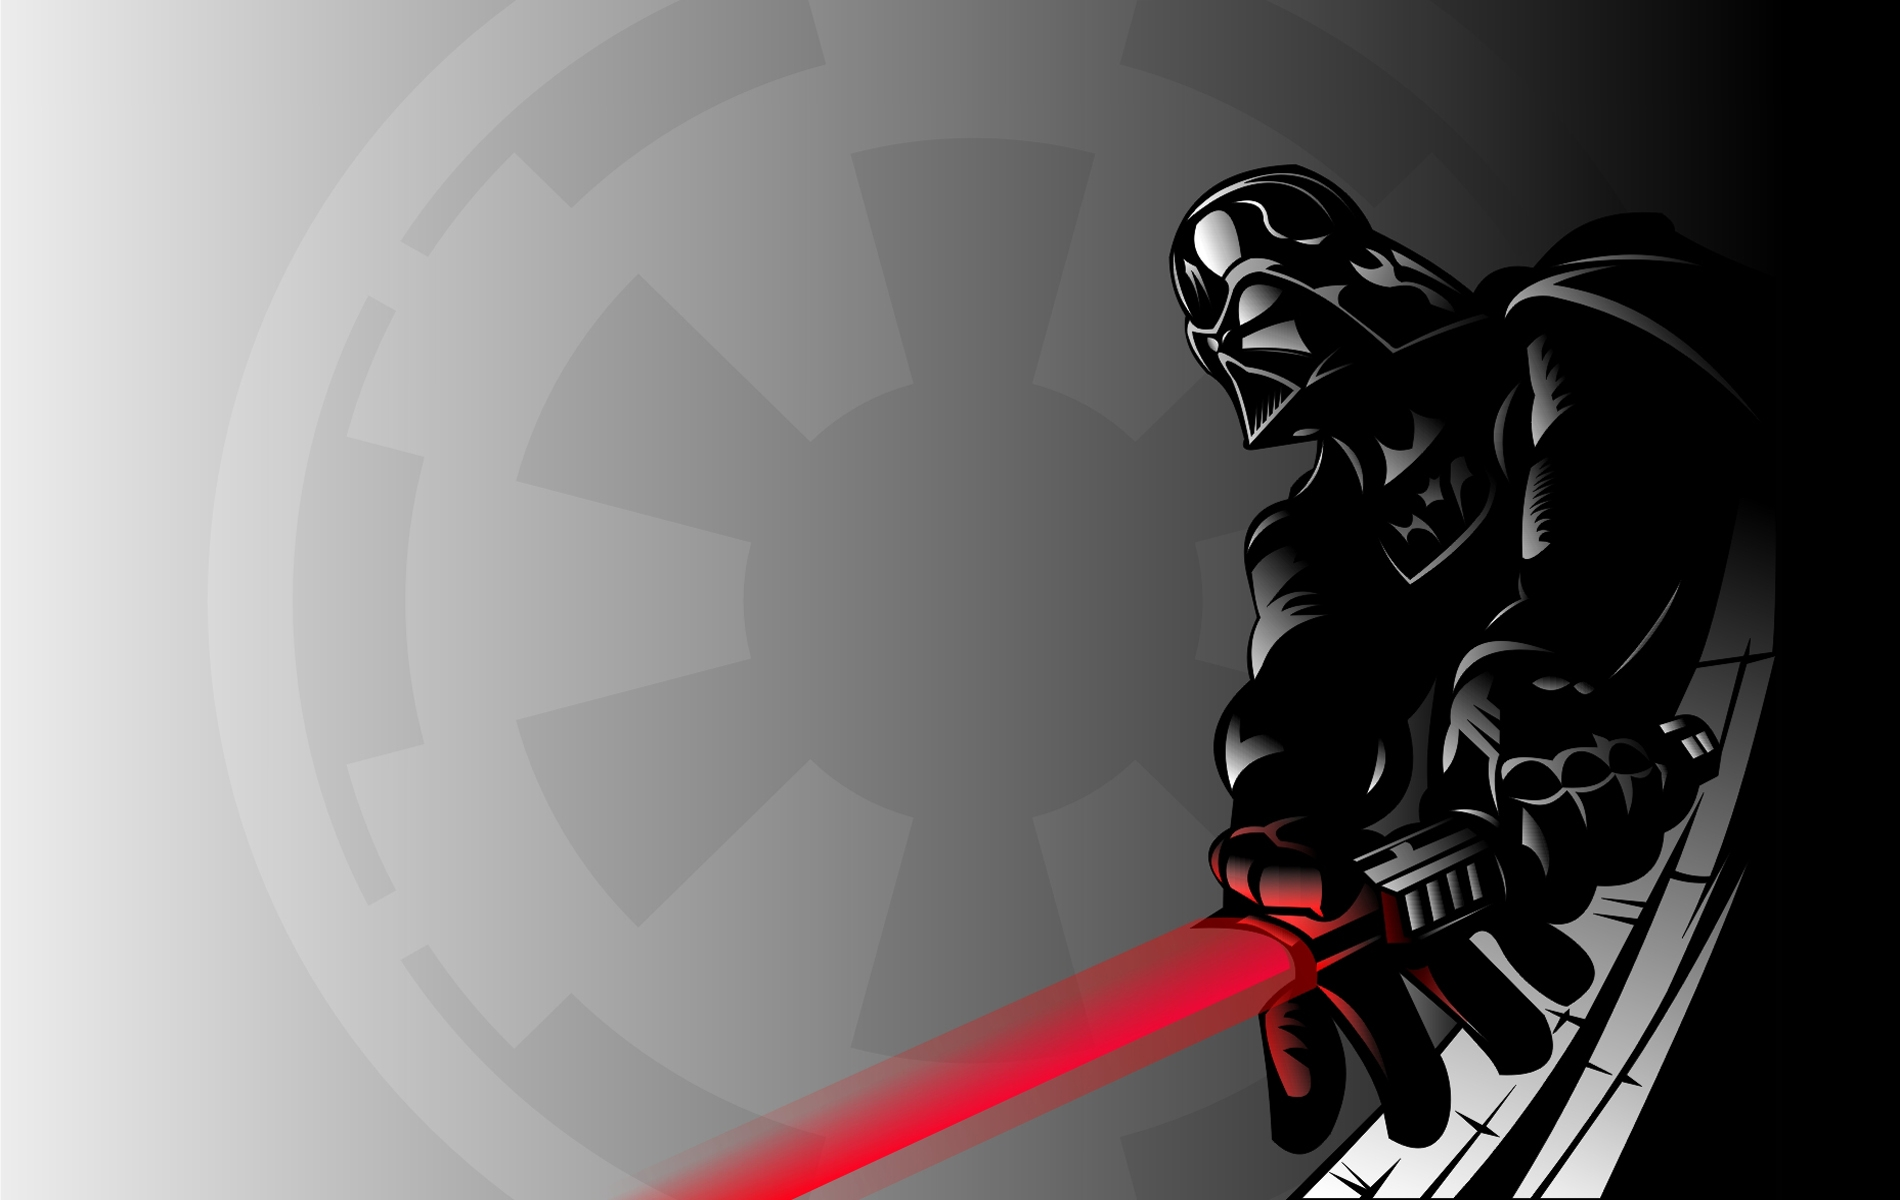 Wallpaper Abyss Explore the Collection Star Wars Movie Star Wars 44820 1900x1200